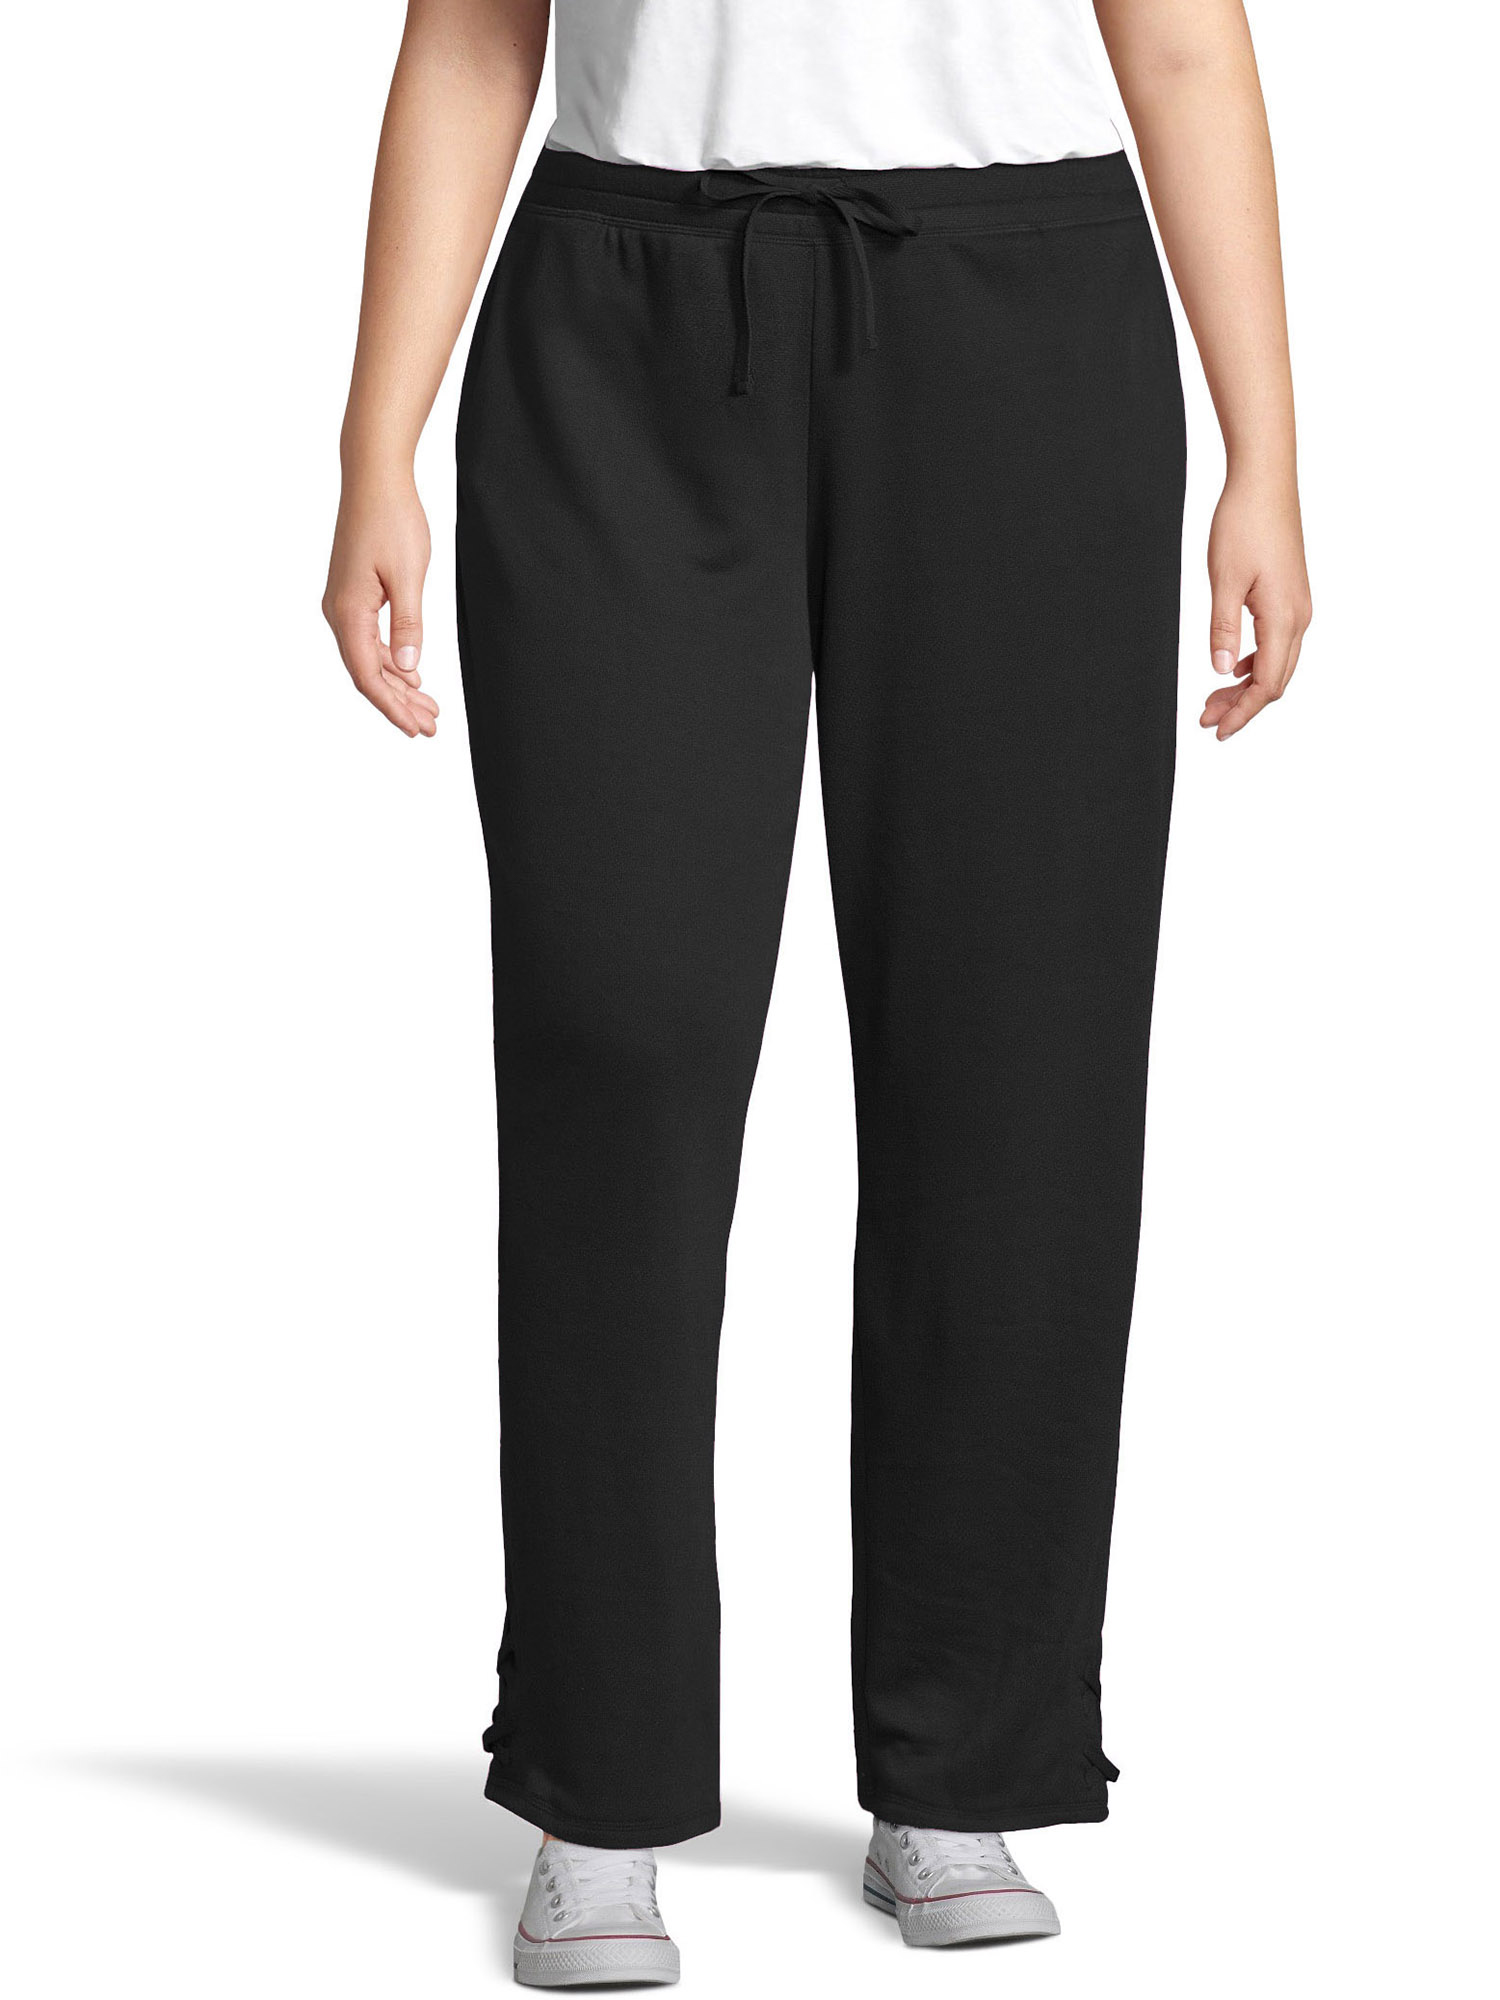 Women's Plus Size French Terry Jogger with Lace-up Legs